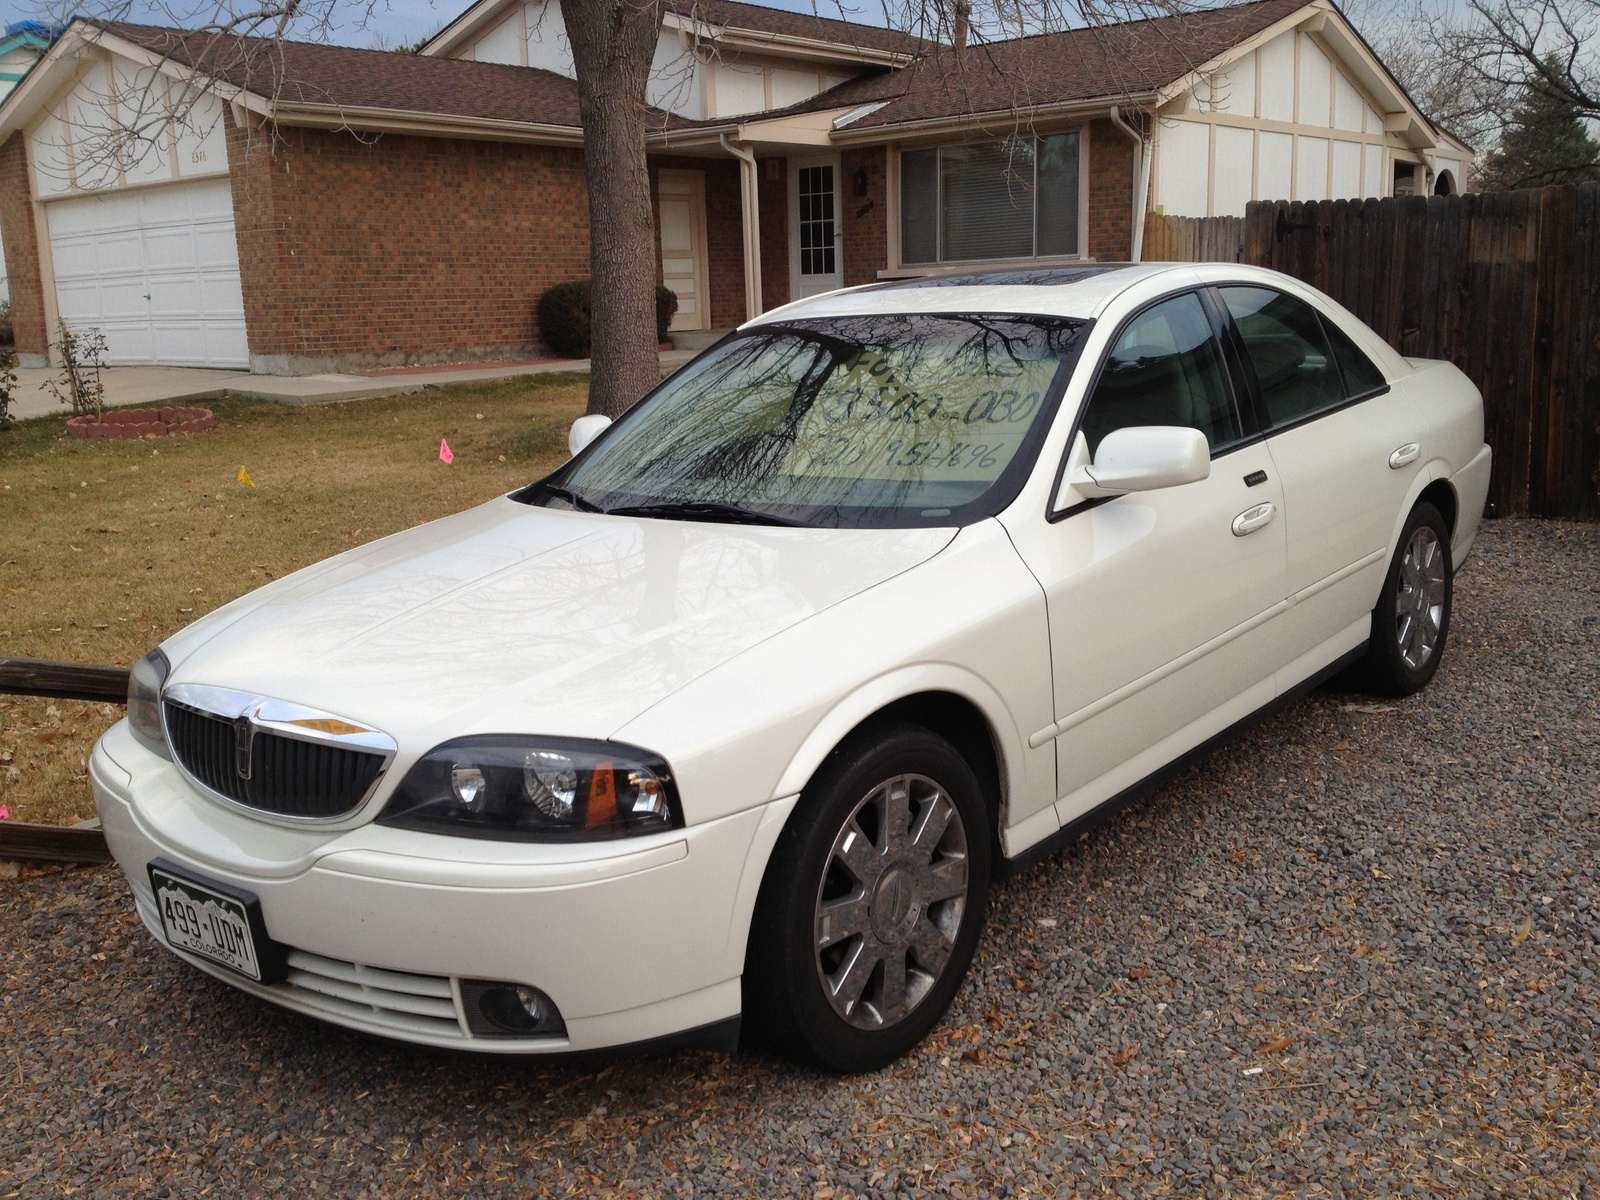 2004 Lincoln Ls - Pictures